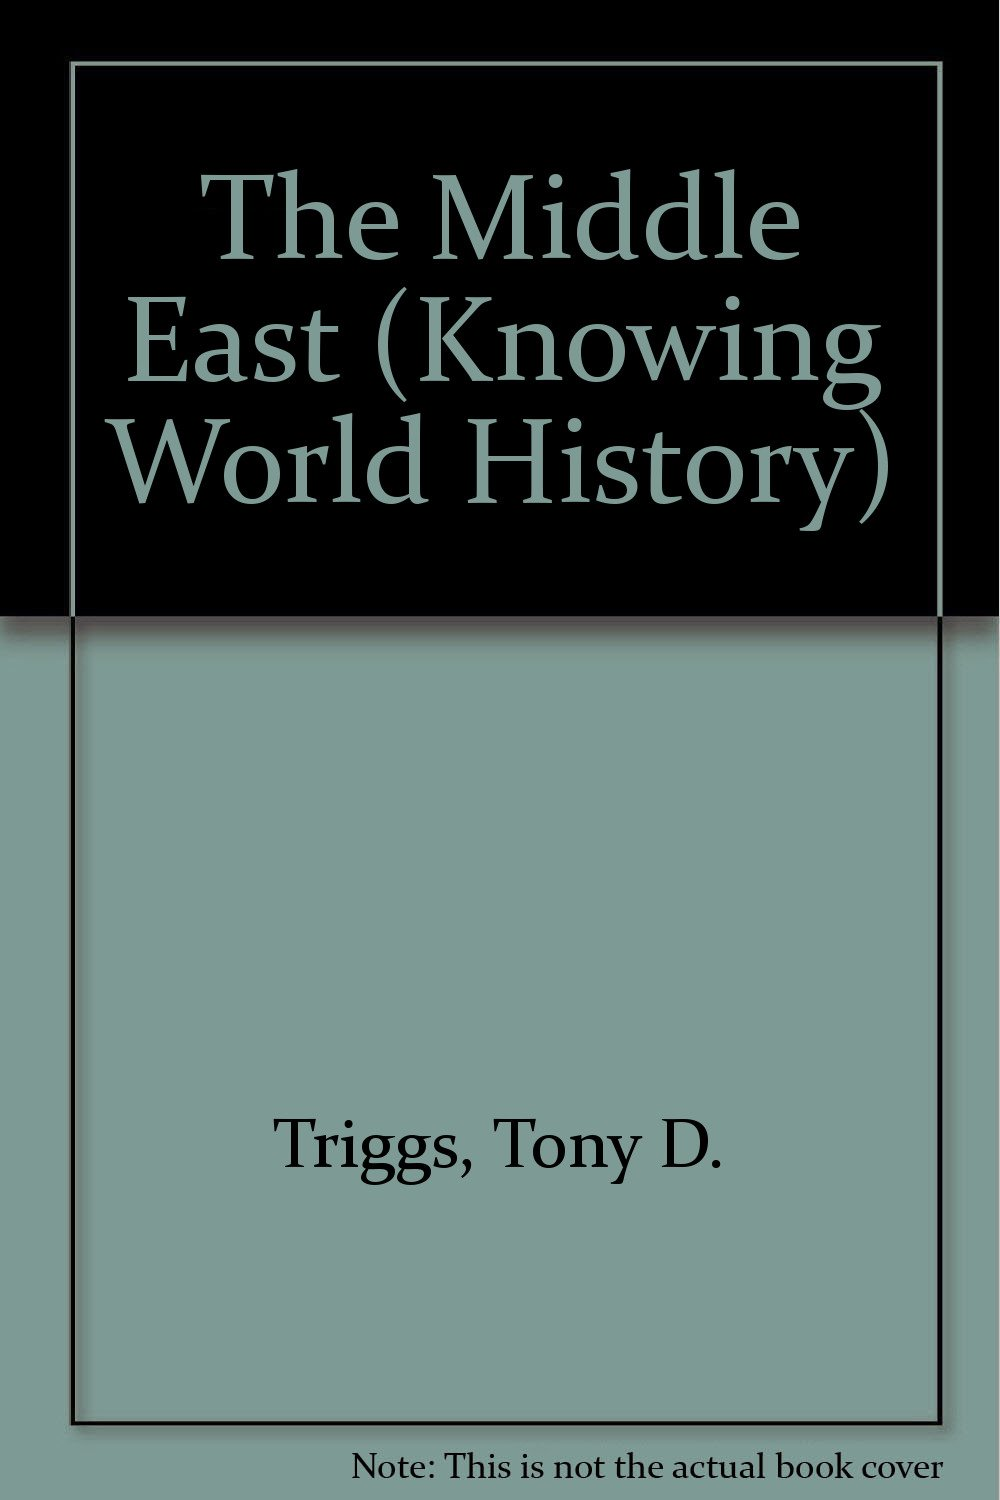 The Middle East (Knowing World History)